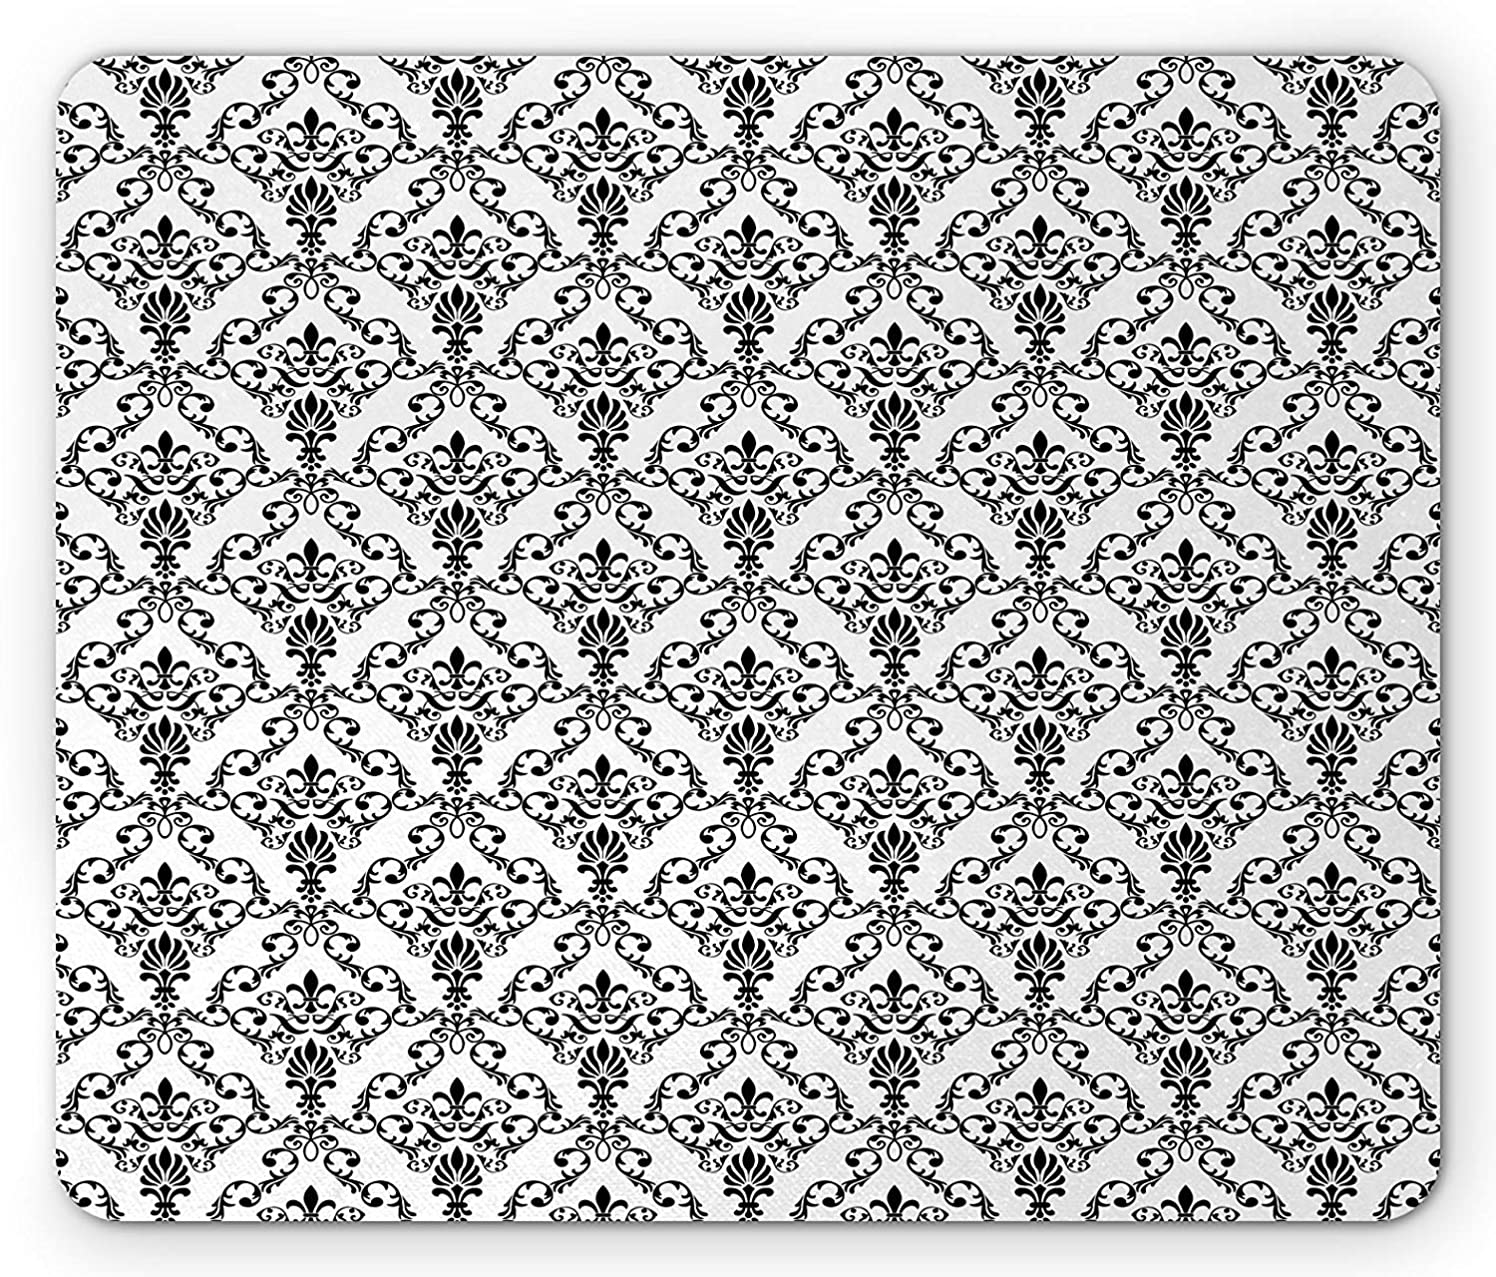 Damask Mouse Pad, Damask Pattern Abstract Old Fashioned Style Architectural Motif Inspired Print, Standard Size Rectangle Non-Slip Rubber Mousepad, Black and White